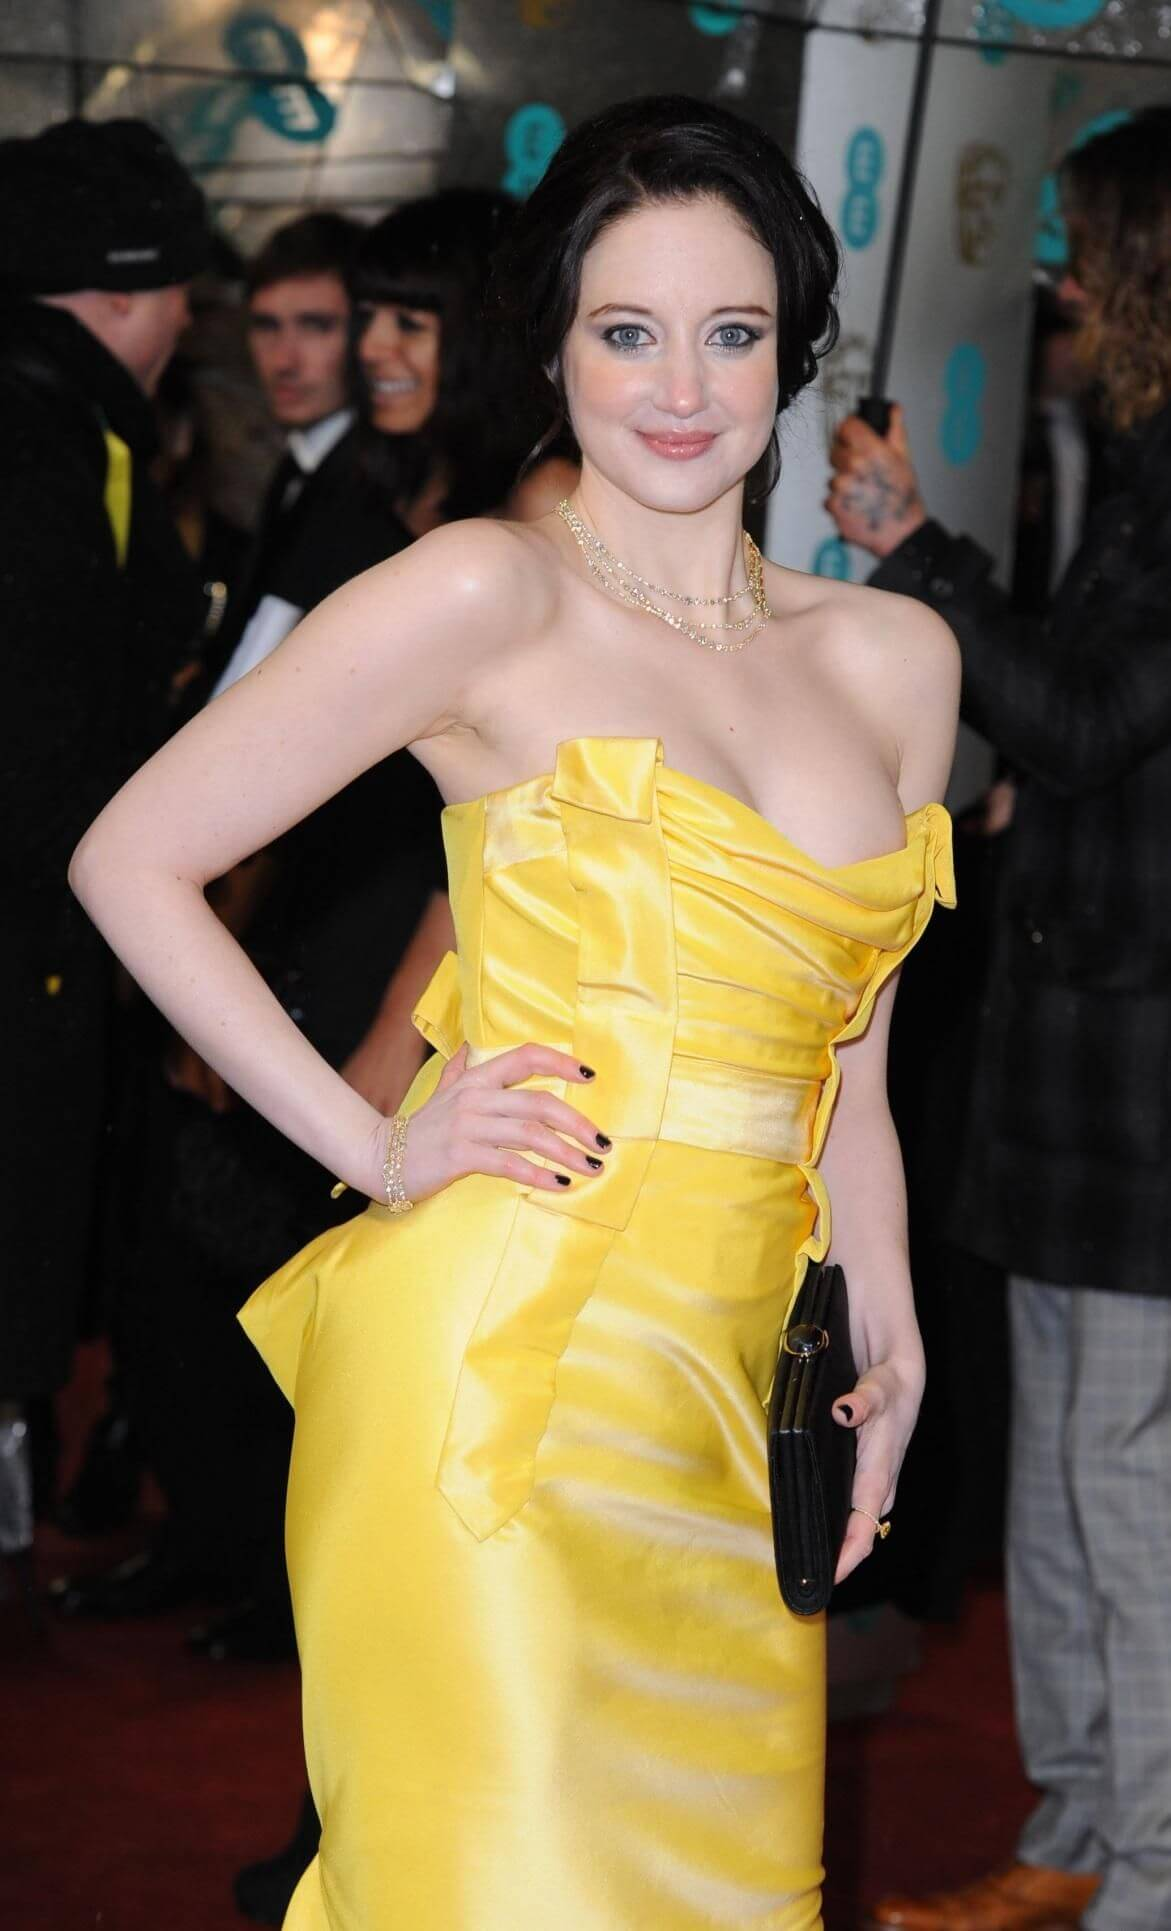 Andriya Hot Images 49 hot pictures of andrea riseborough which will make your